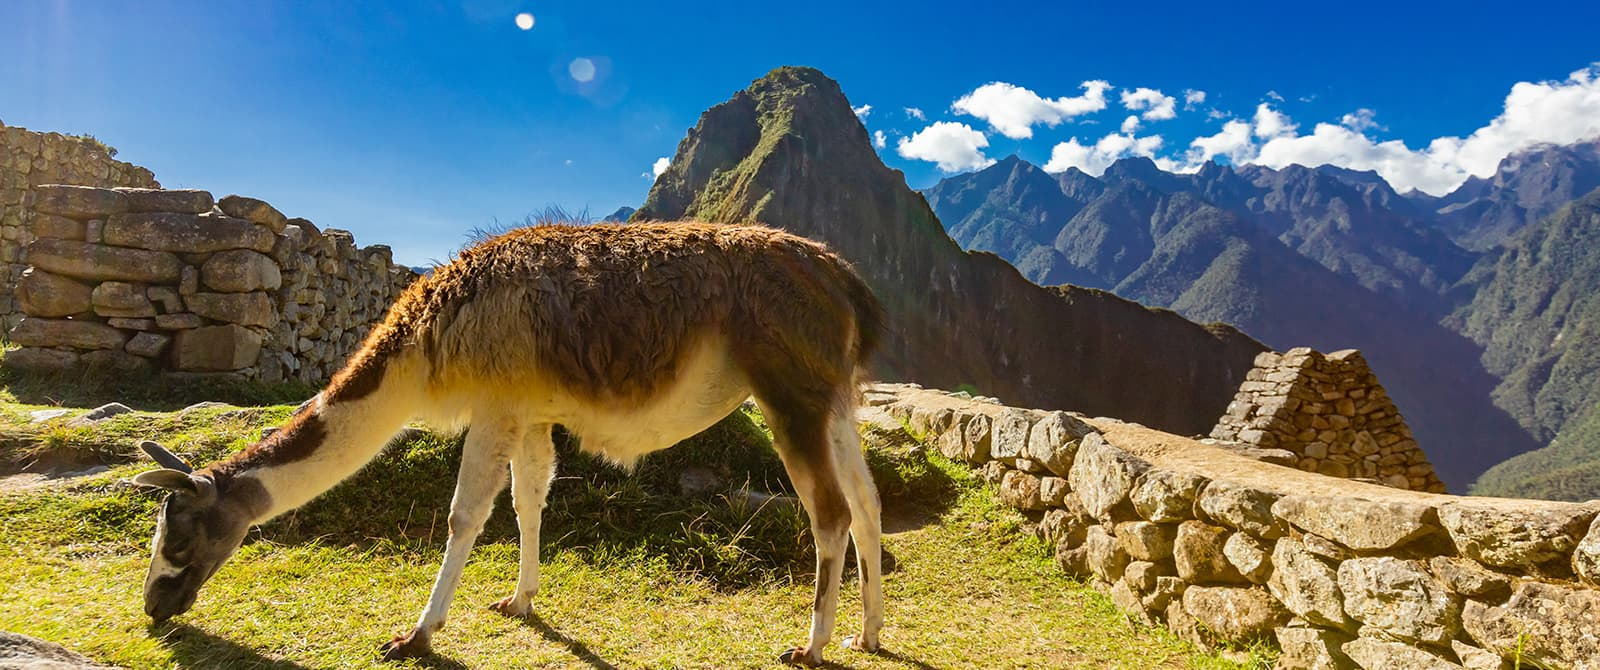 machu picchu one of the wonders of the world